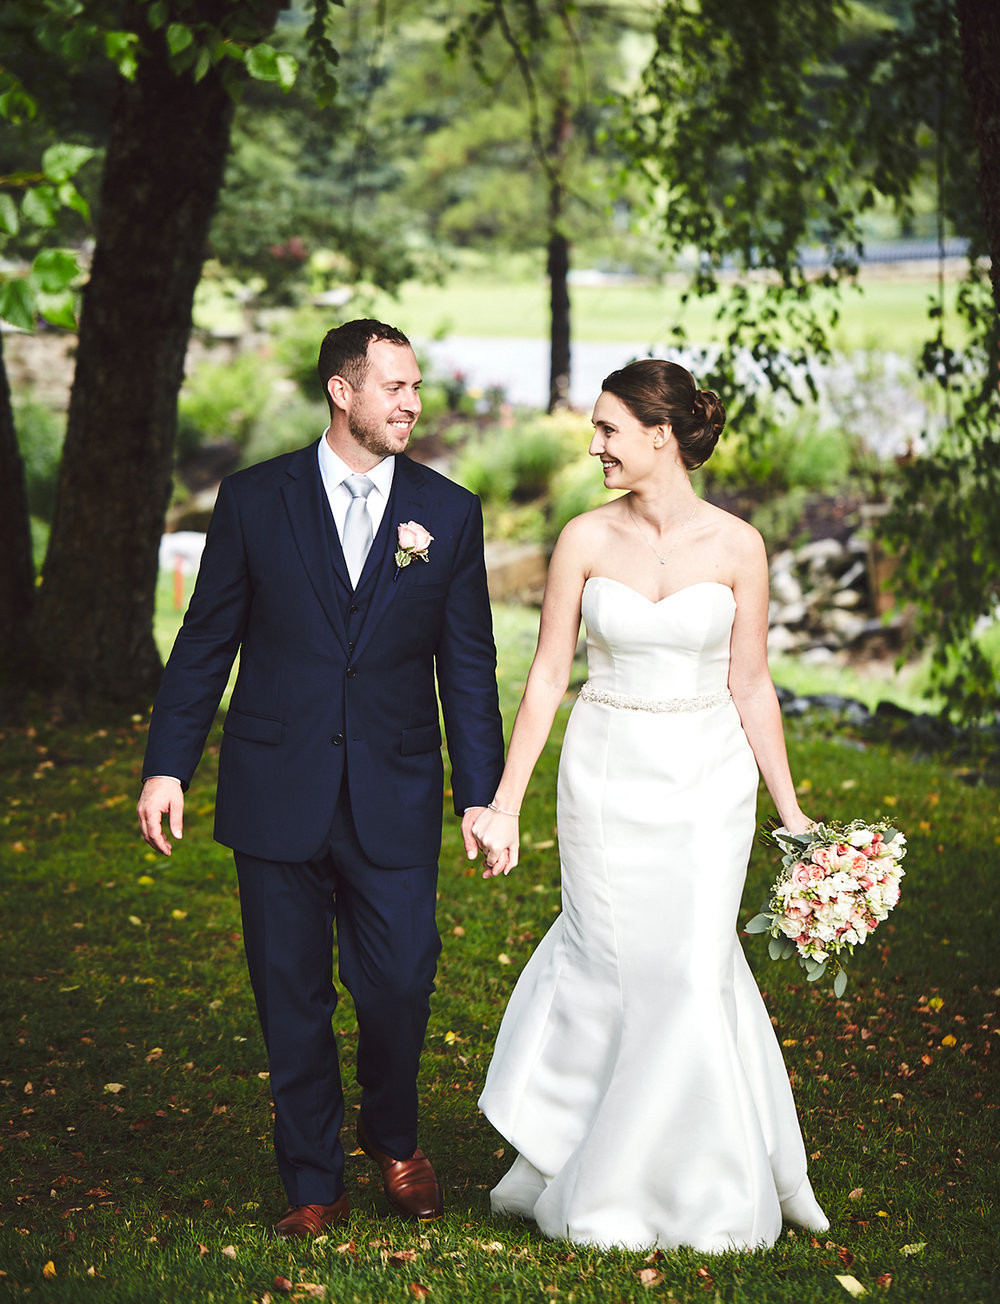 180714_HolidayValleyLodgeWeddingPhotography_By_BriJohnsonWeddings_0110.jpg